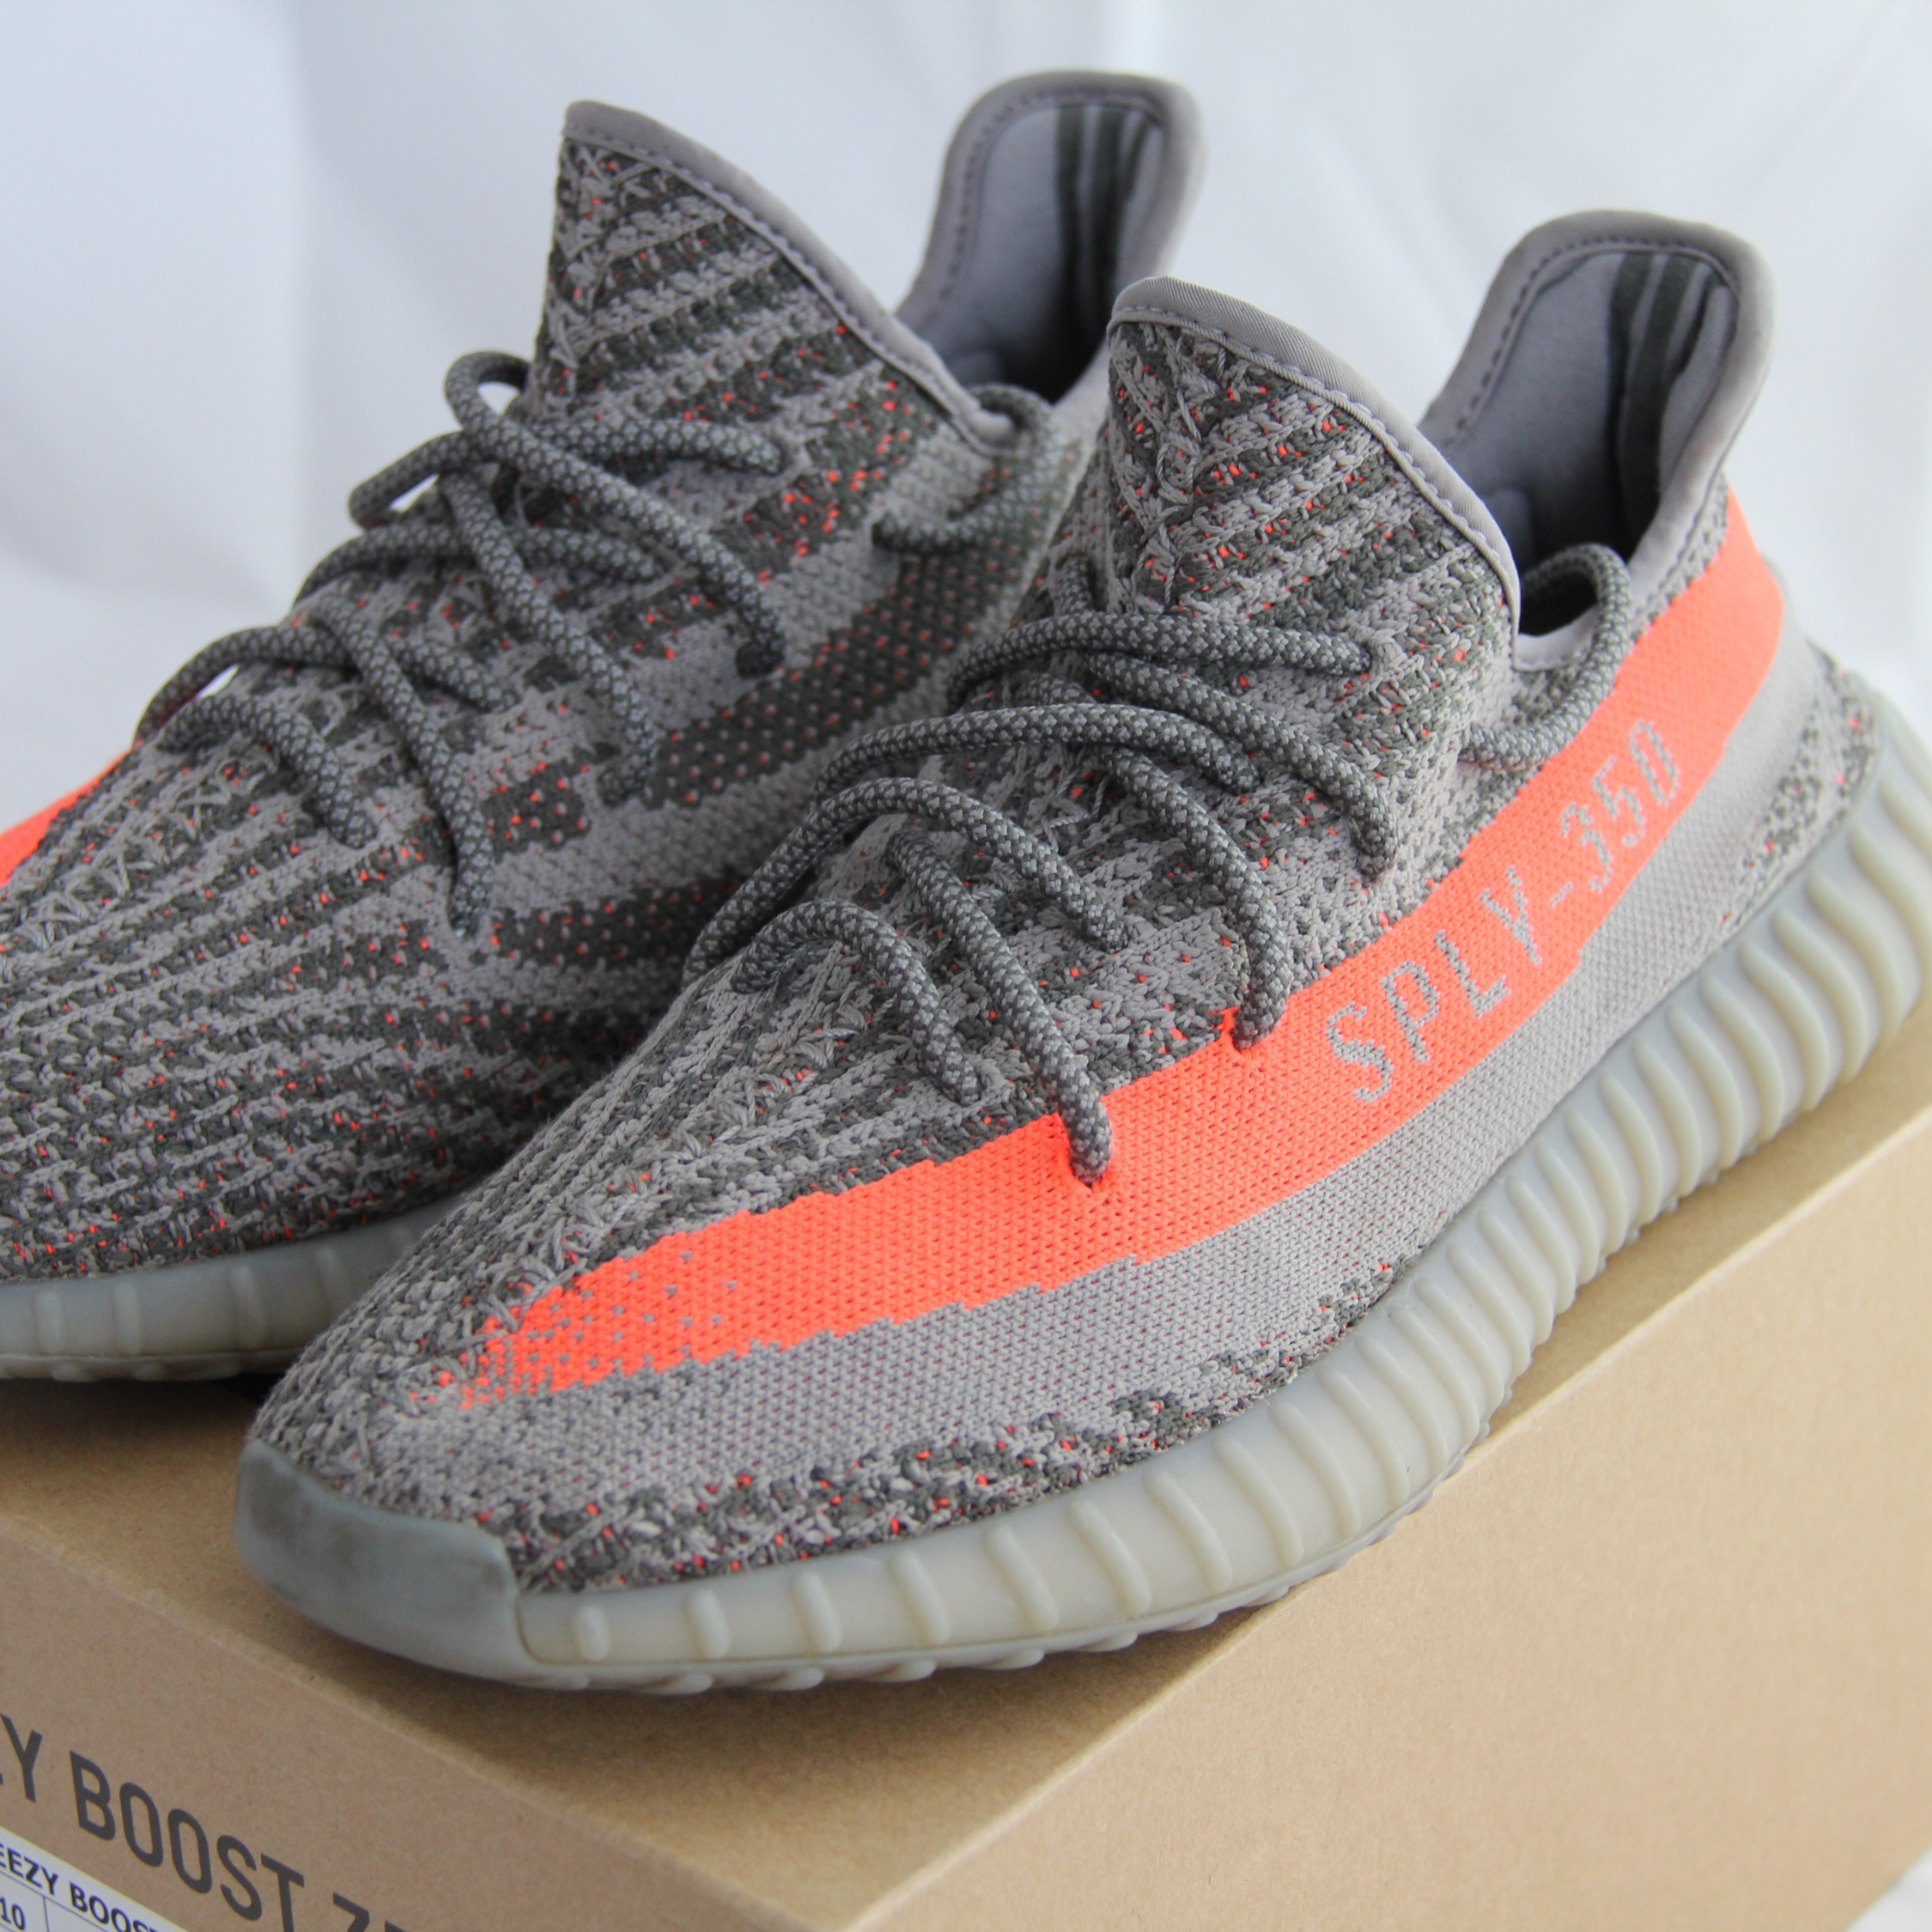 release date a840d 5c4ab Adidas Yeezy Boost 350 V2 Beluga 1.0